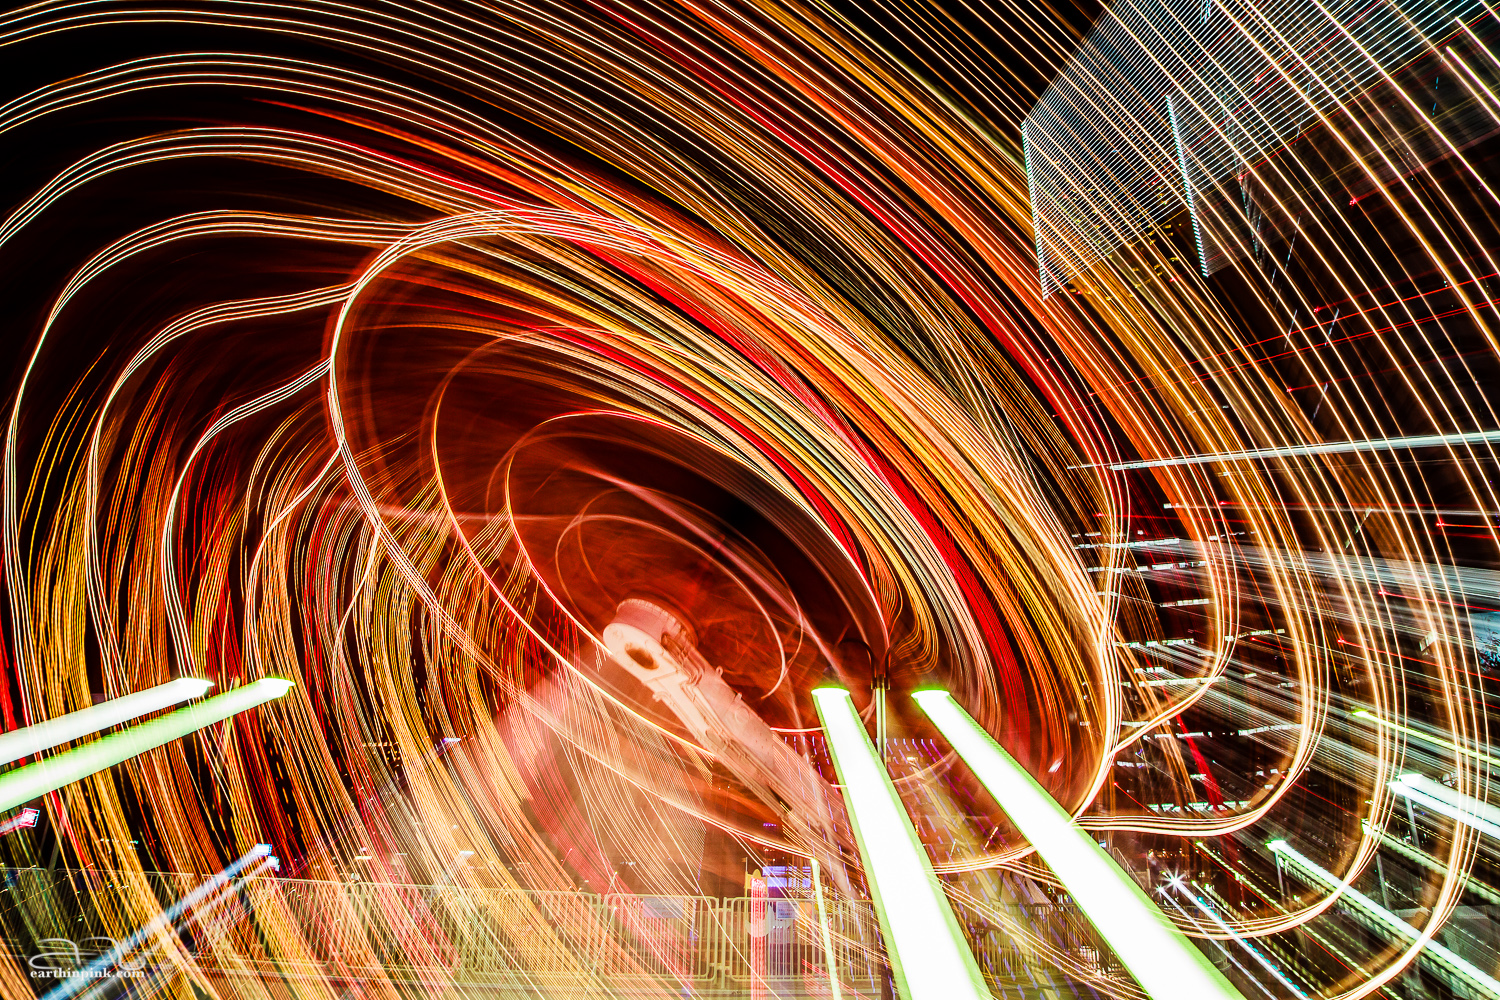 A long exposure of an amusement ride at the Yokohama Cosmo World. Again, I zoomed in while the shutter was open to make this look like a whirlpool of light.